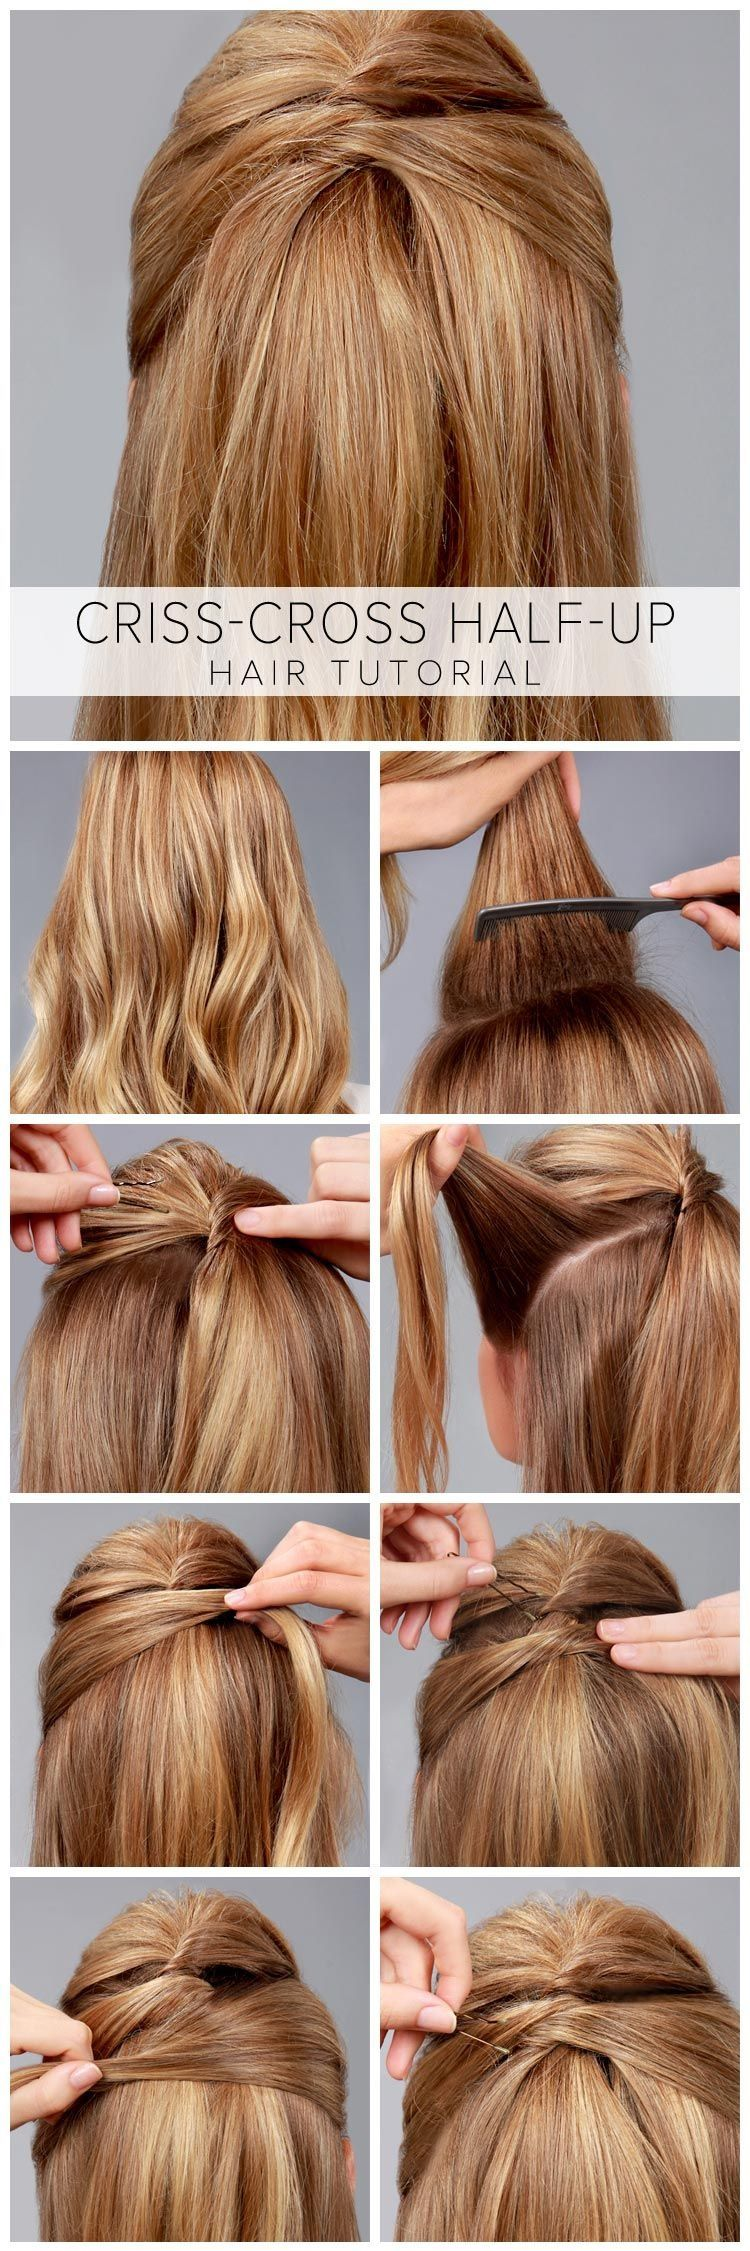 Up Hairstyles 25 Five Minute Or Less Hairstyles That'll Save You From Busy